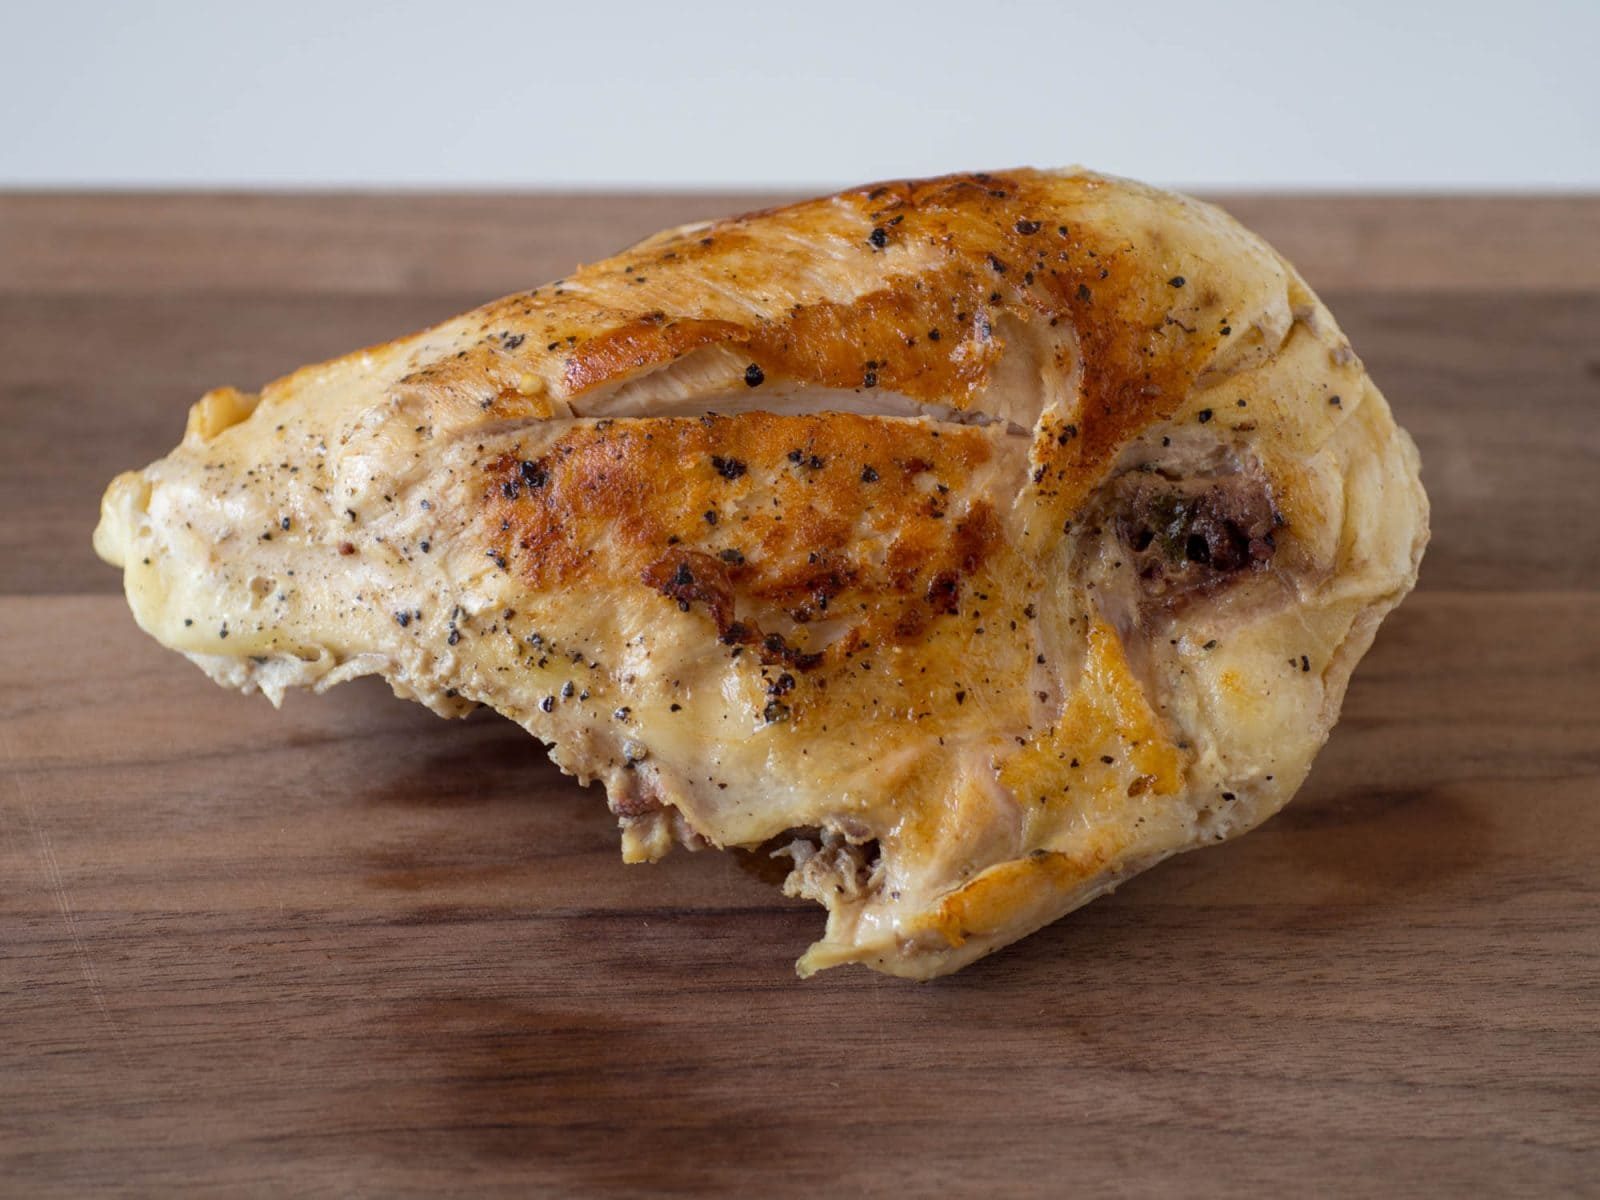 Nicely browned sous-vide chicken breast